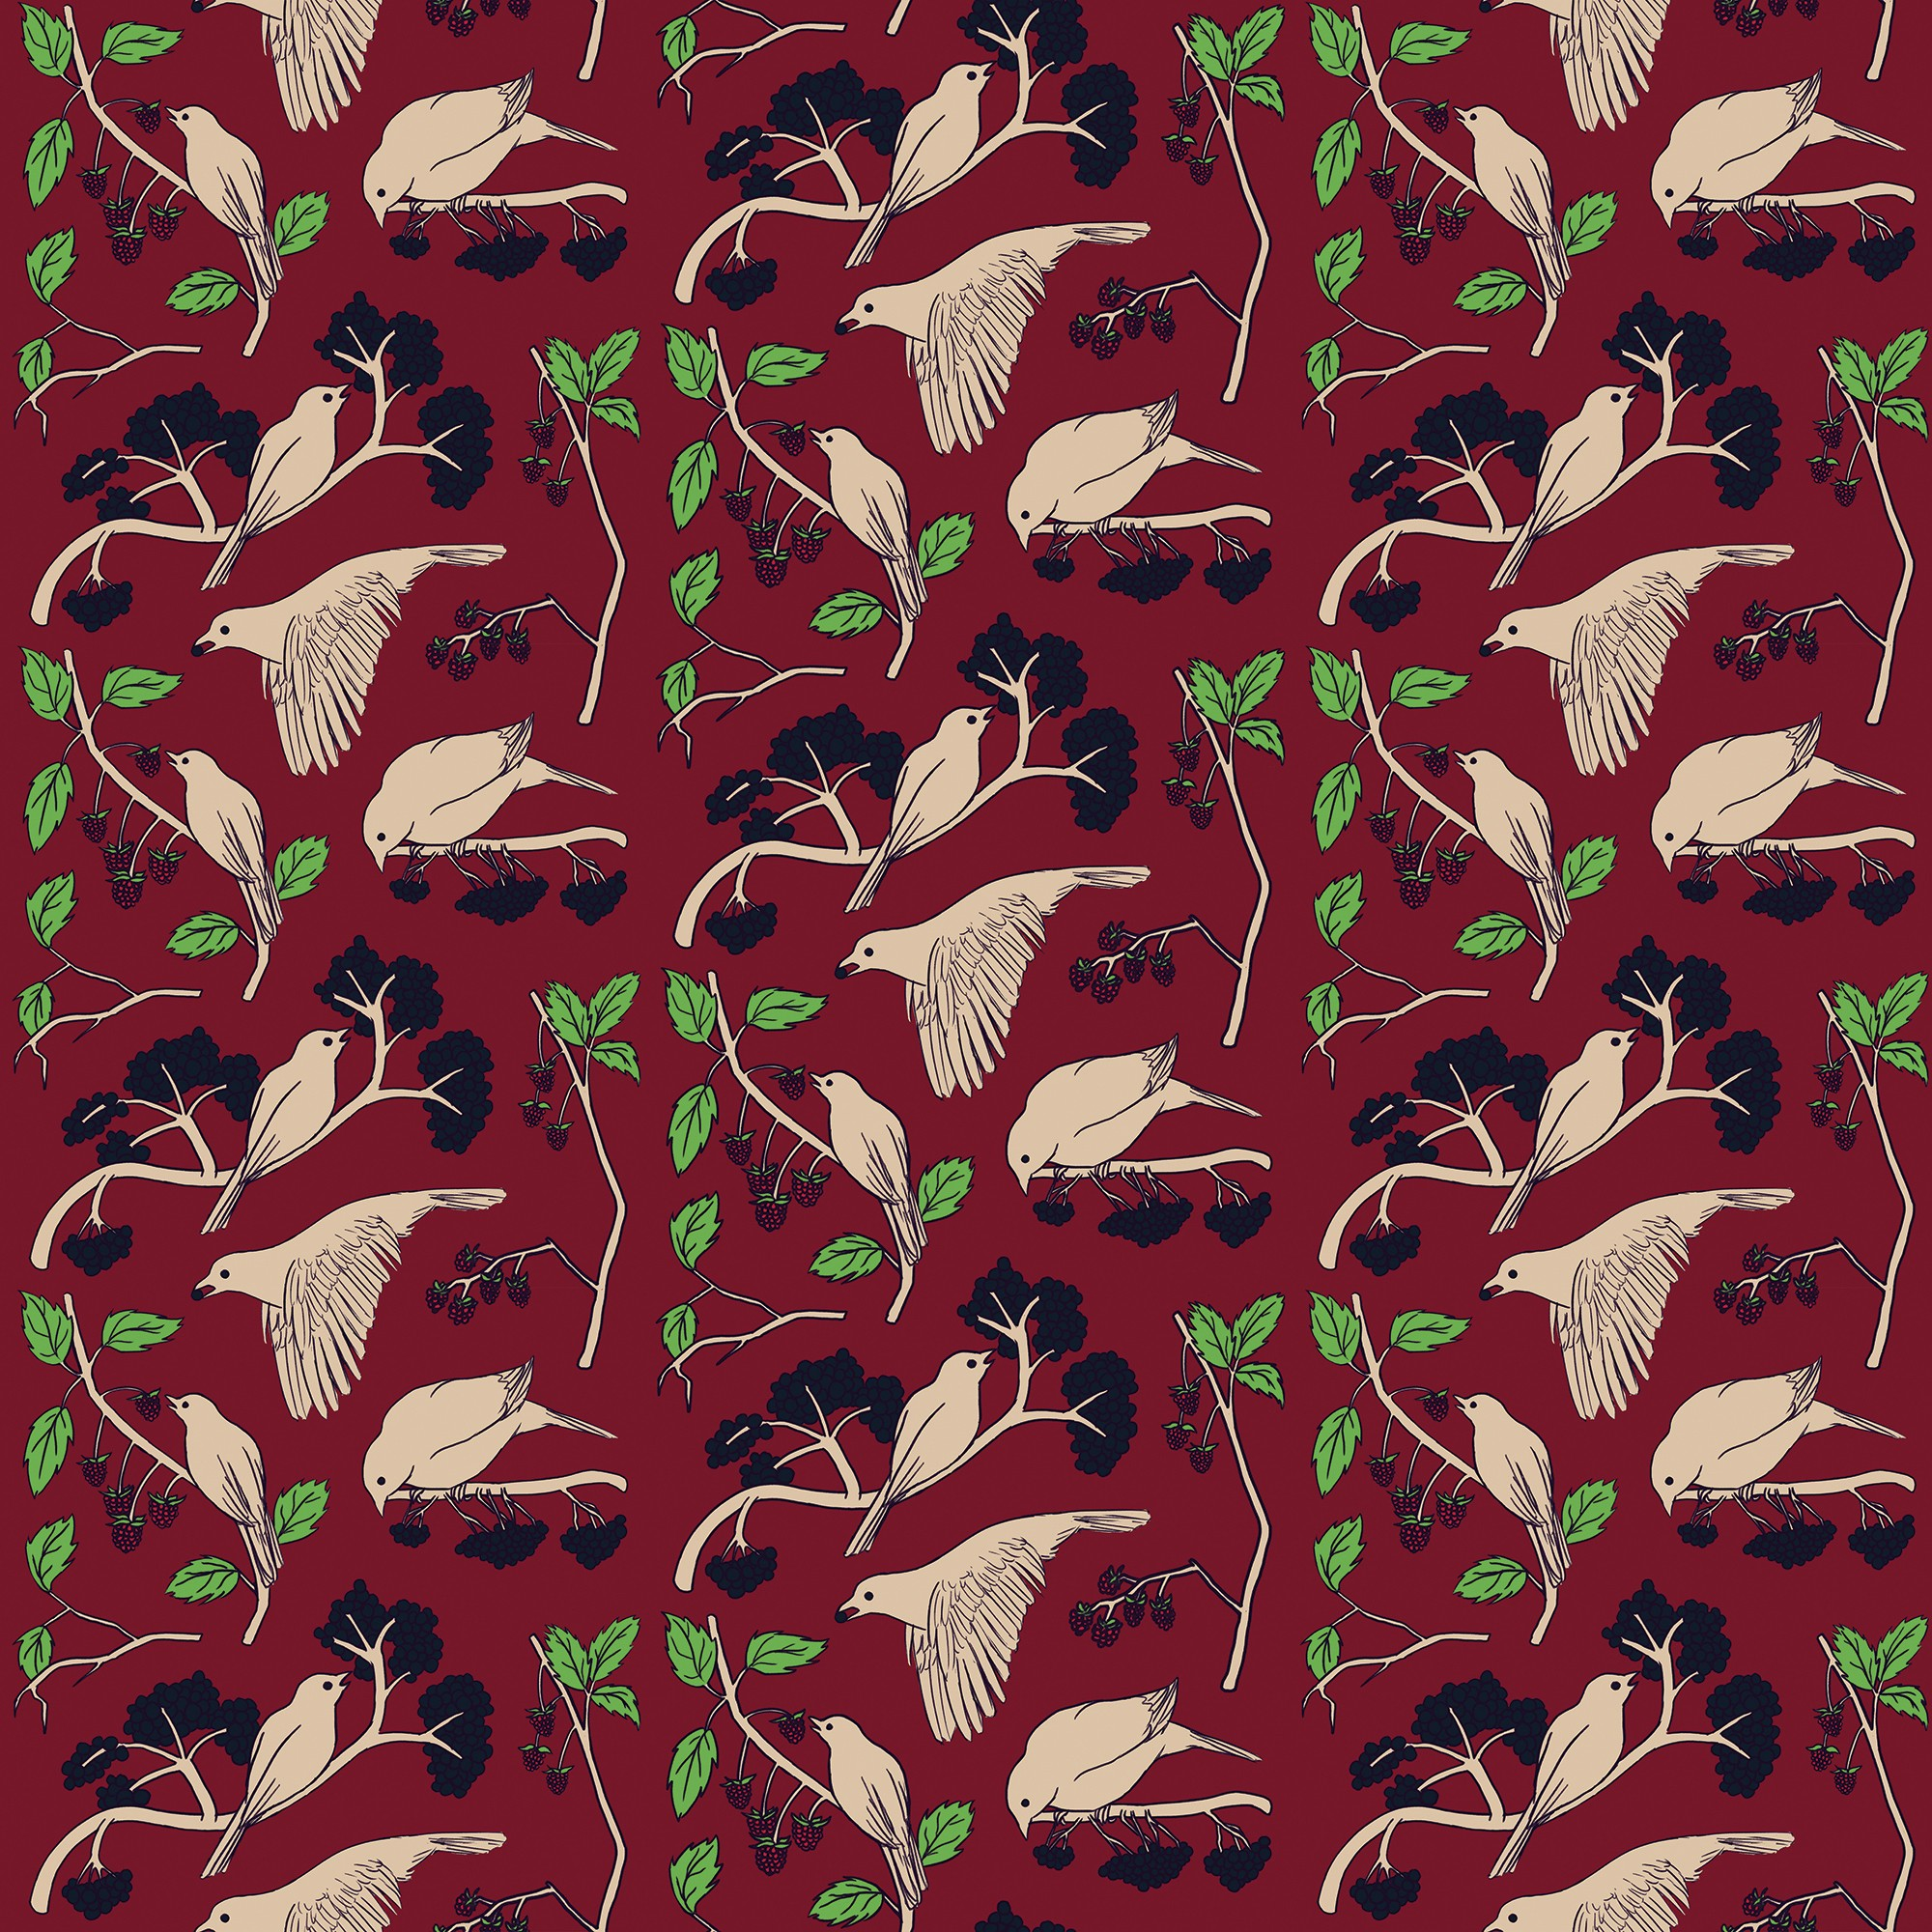 Repeating pattern of birds flying and feeding off of berry branches